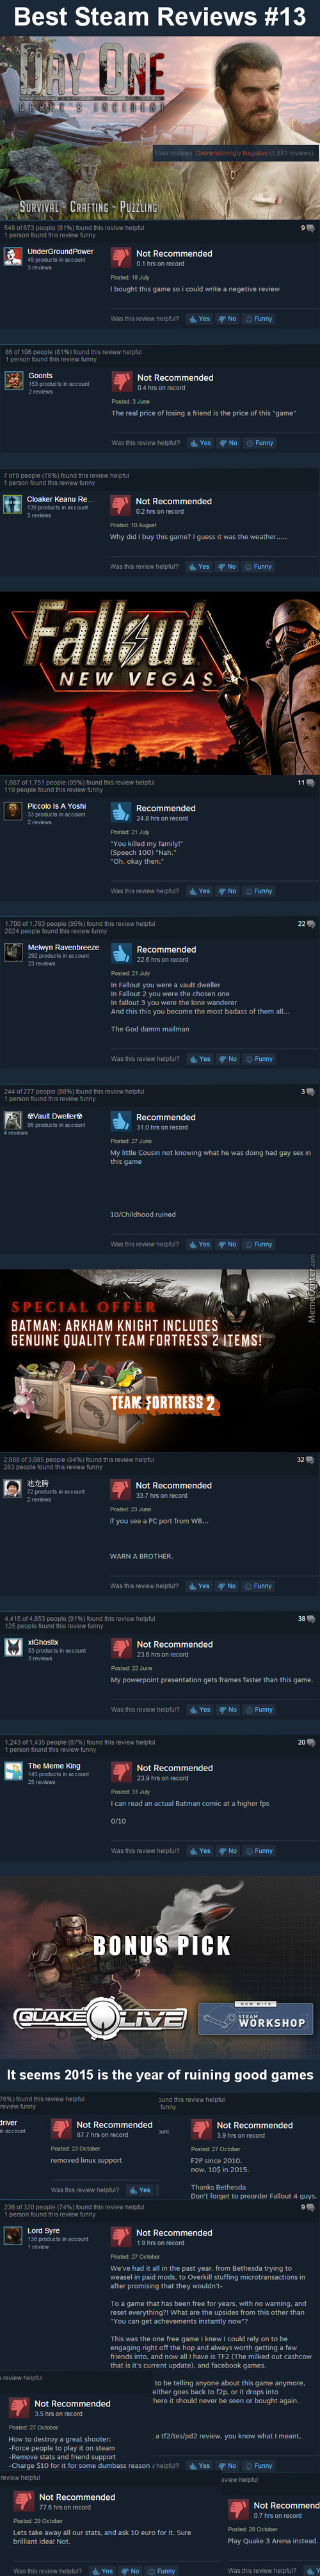 Best Steam Reviews #13 - The 4 Bad Games